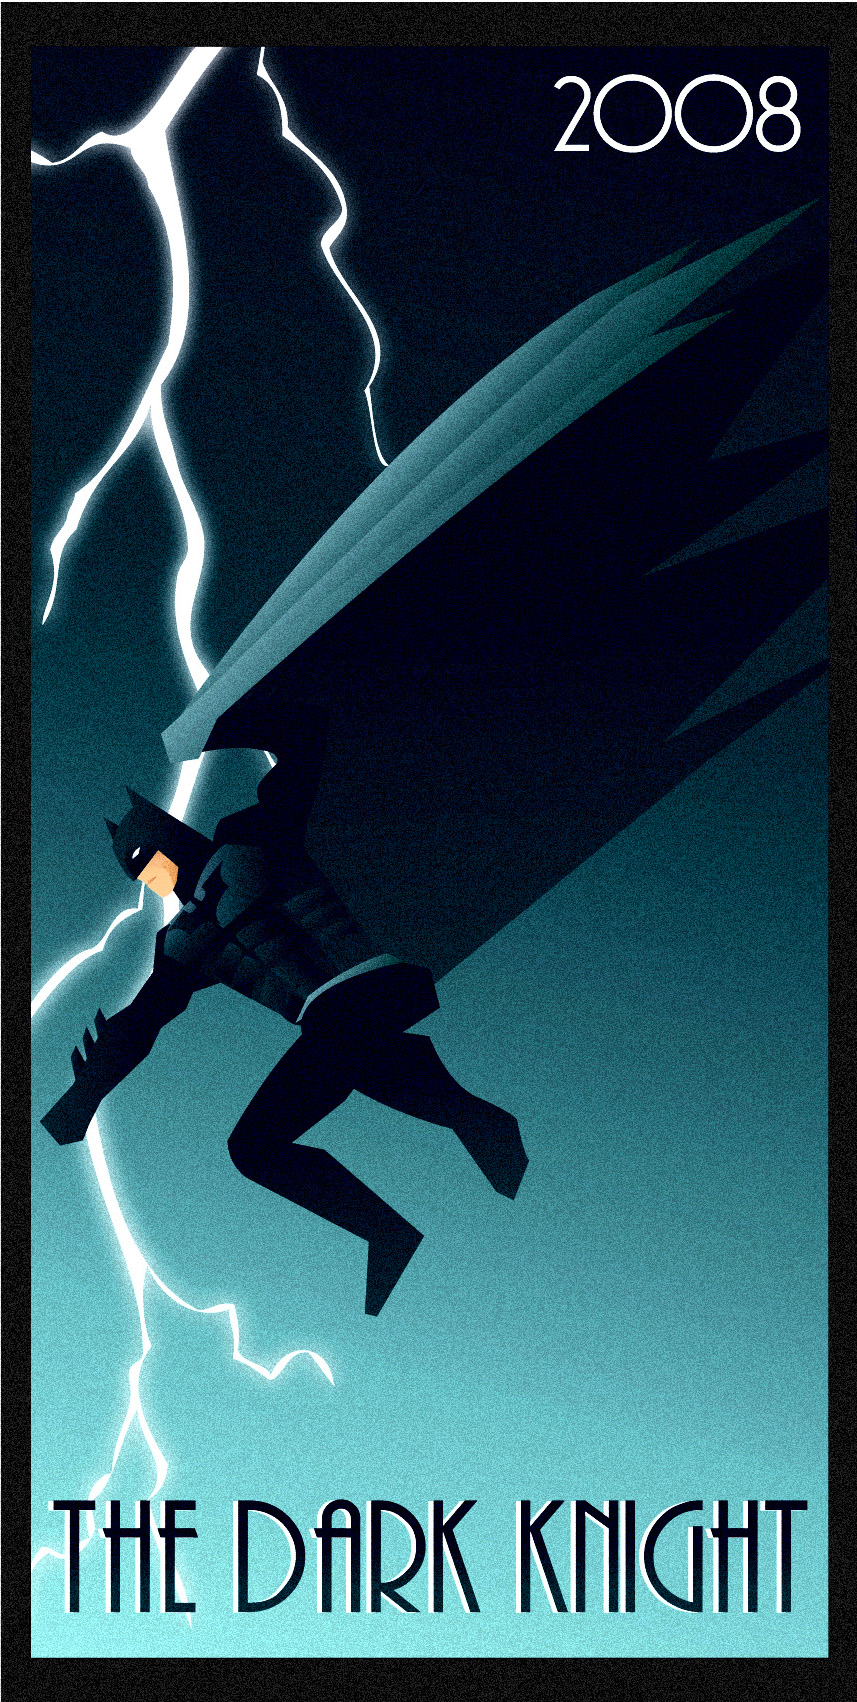 THE DARK KNIGHT art deco by rodolforever on DeviantArt